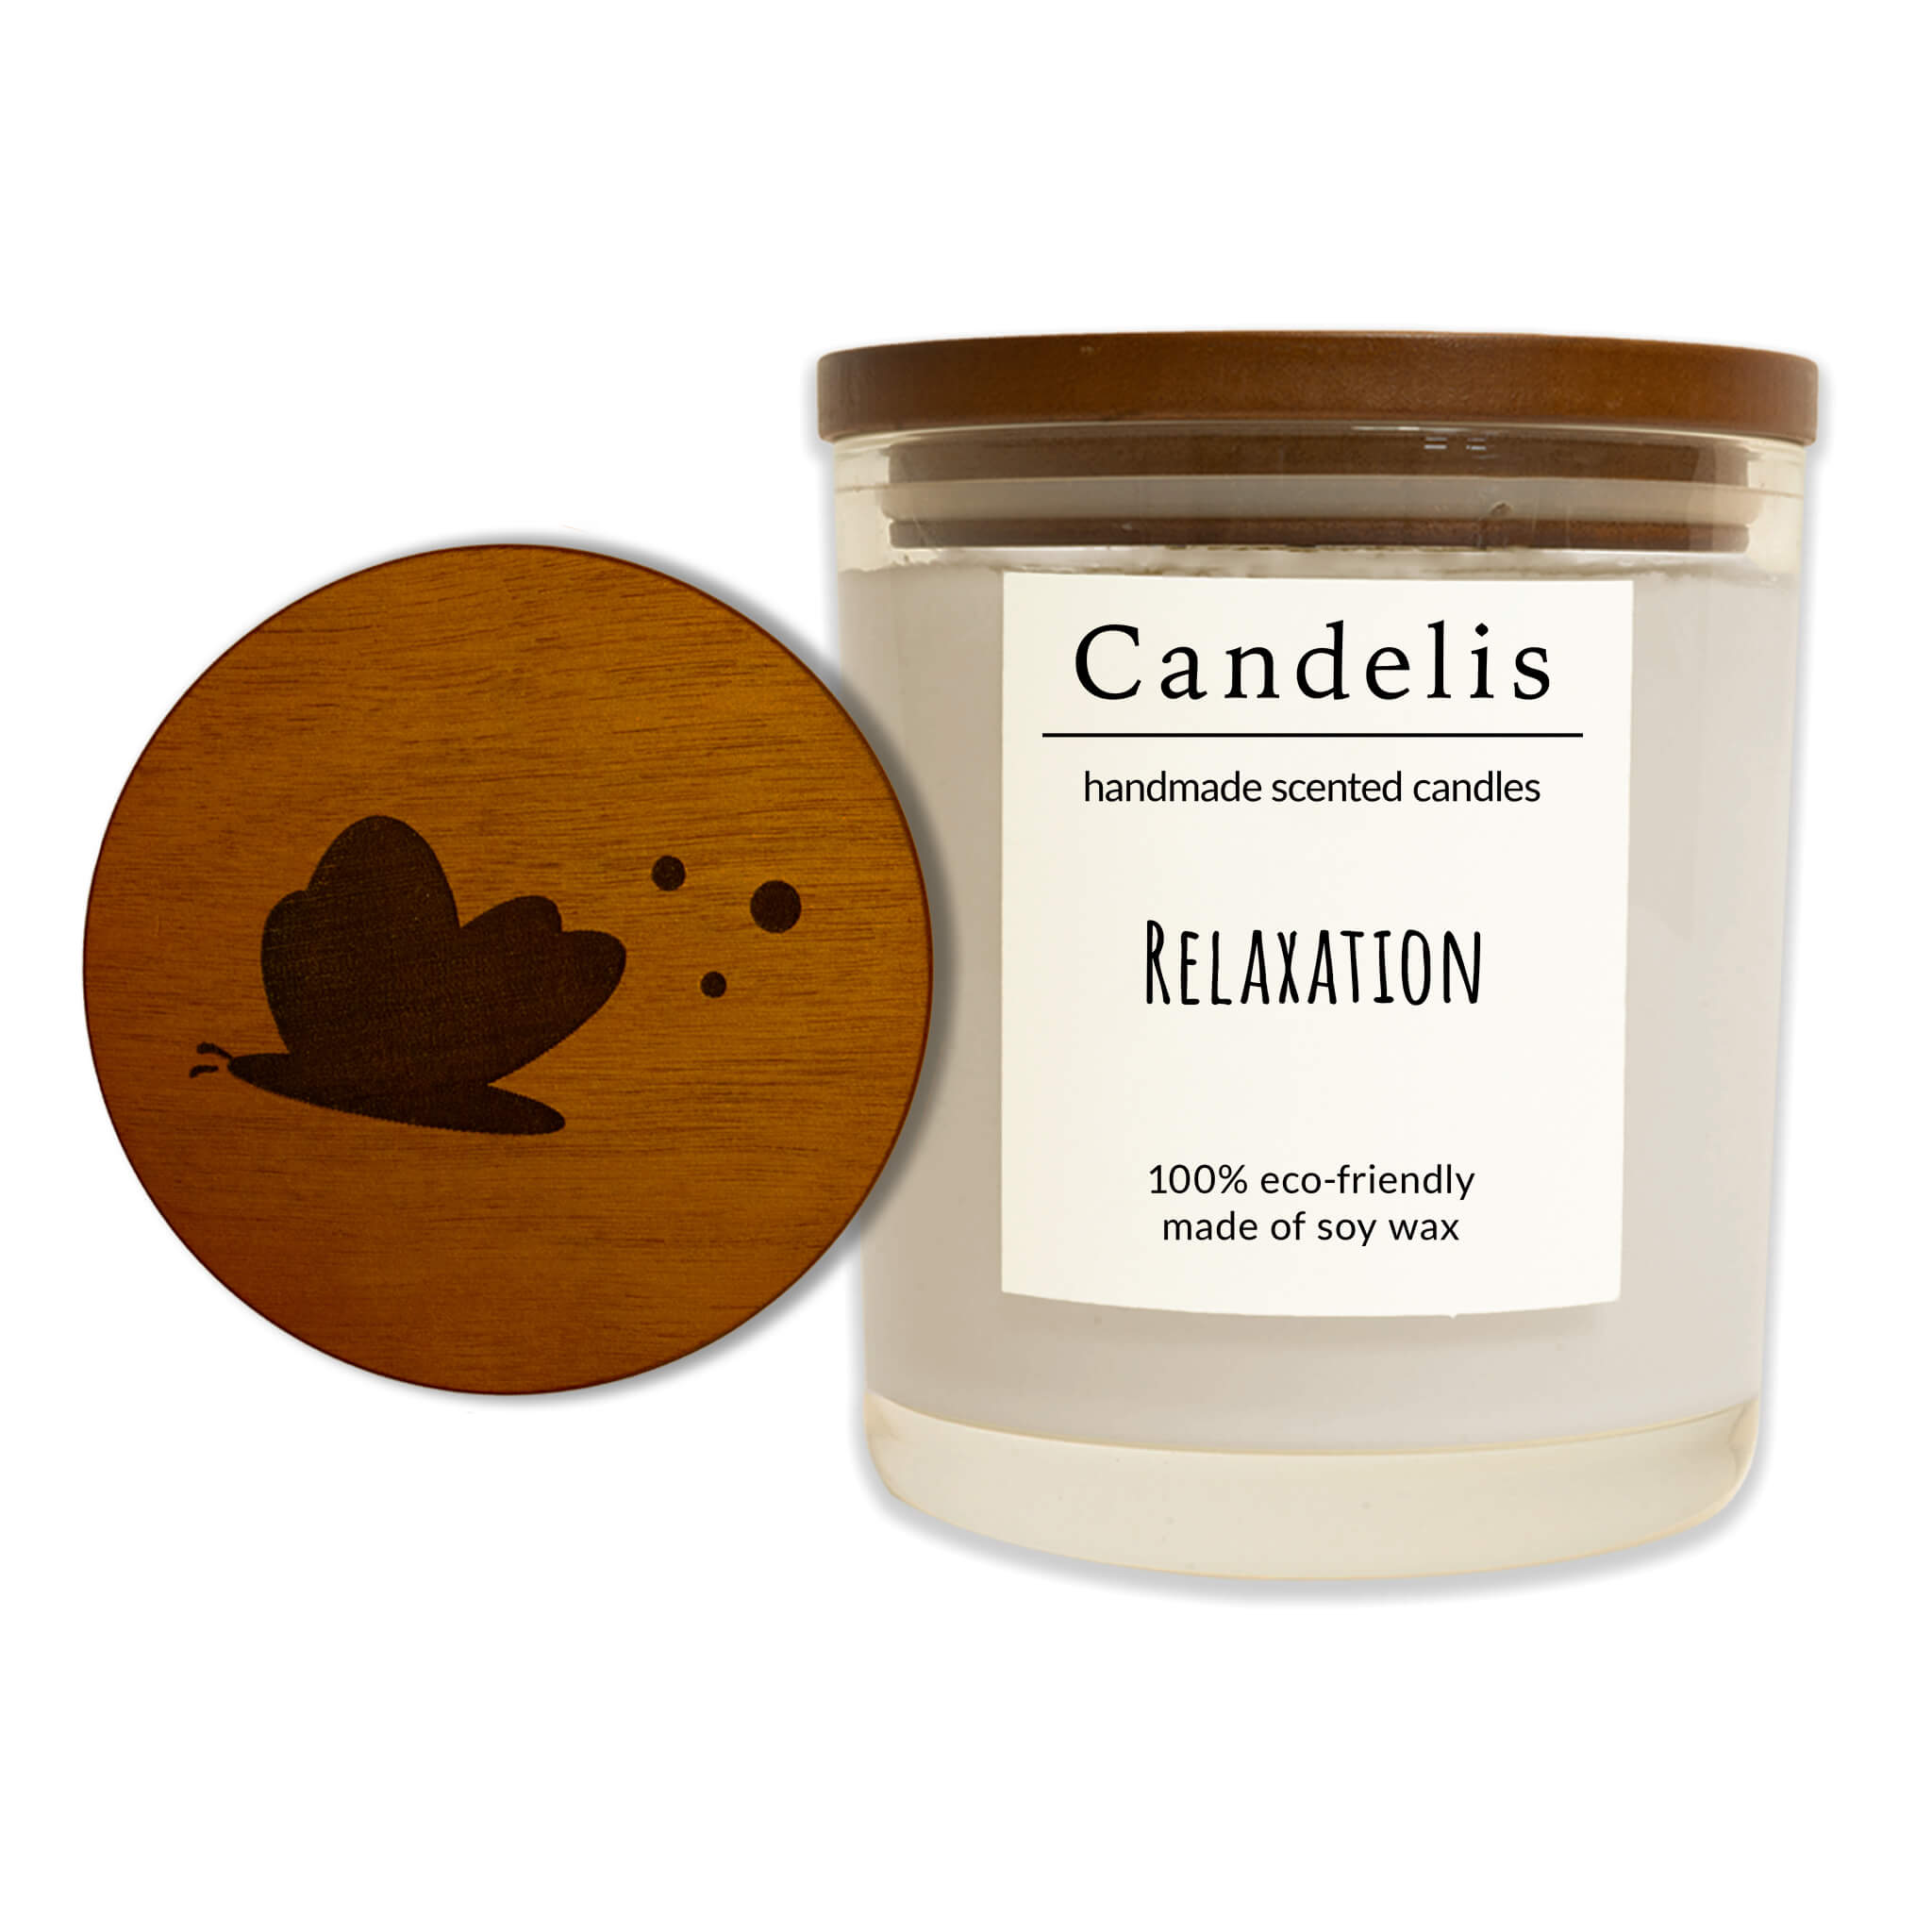 Relaxation basis collectie single